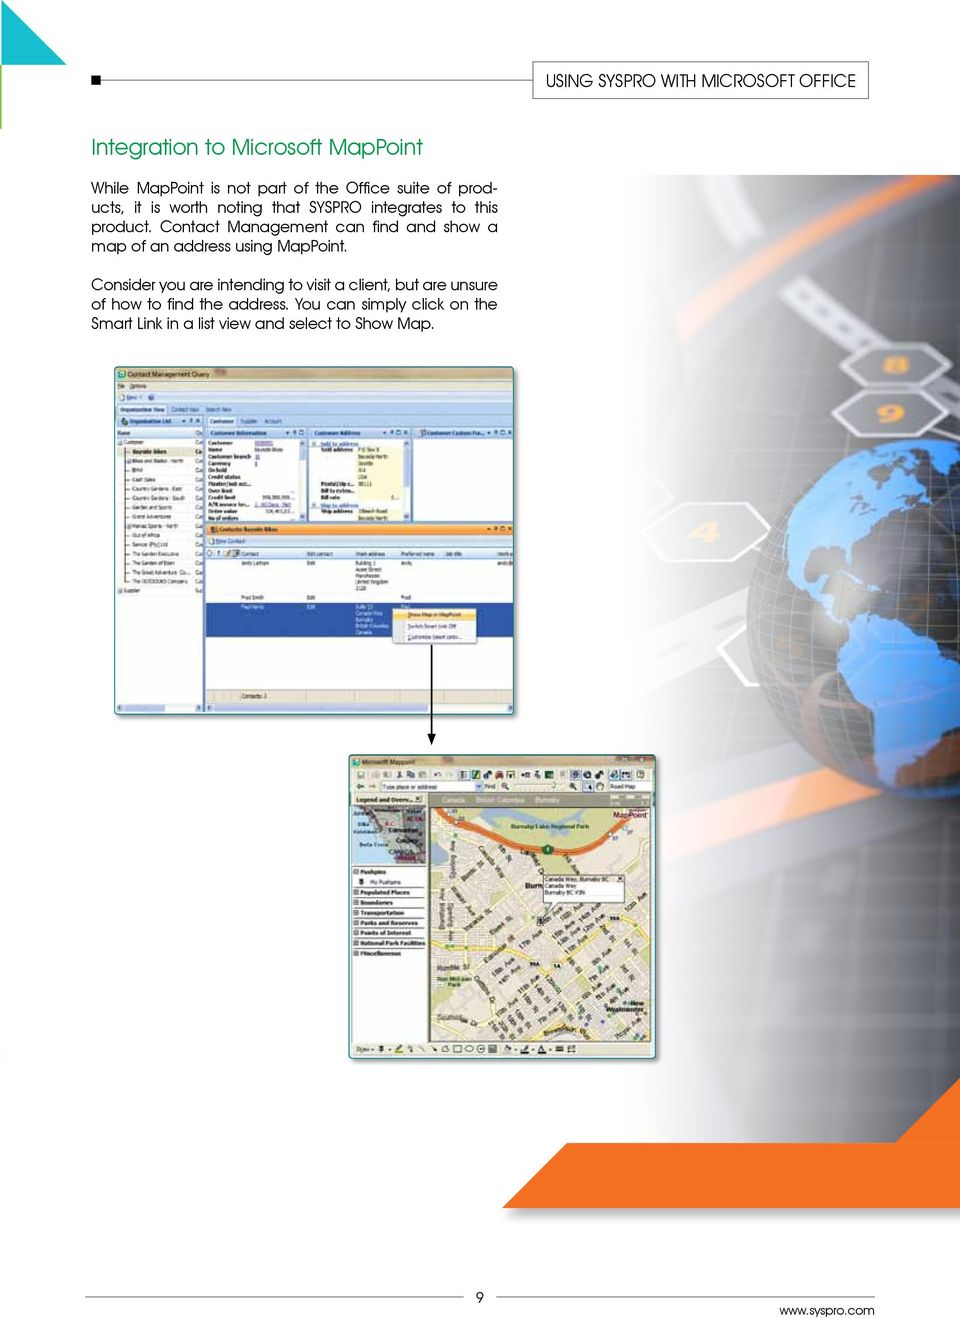 Contact Management can find and show a map of an address using MapPoint.